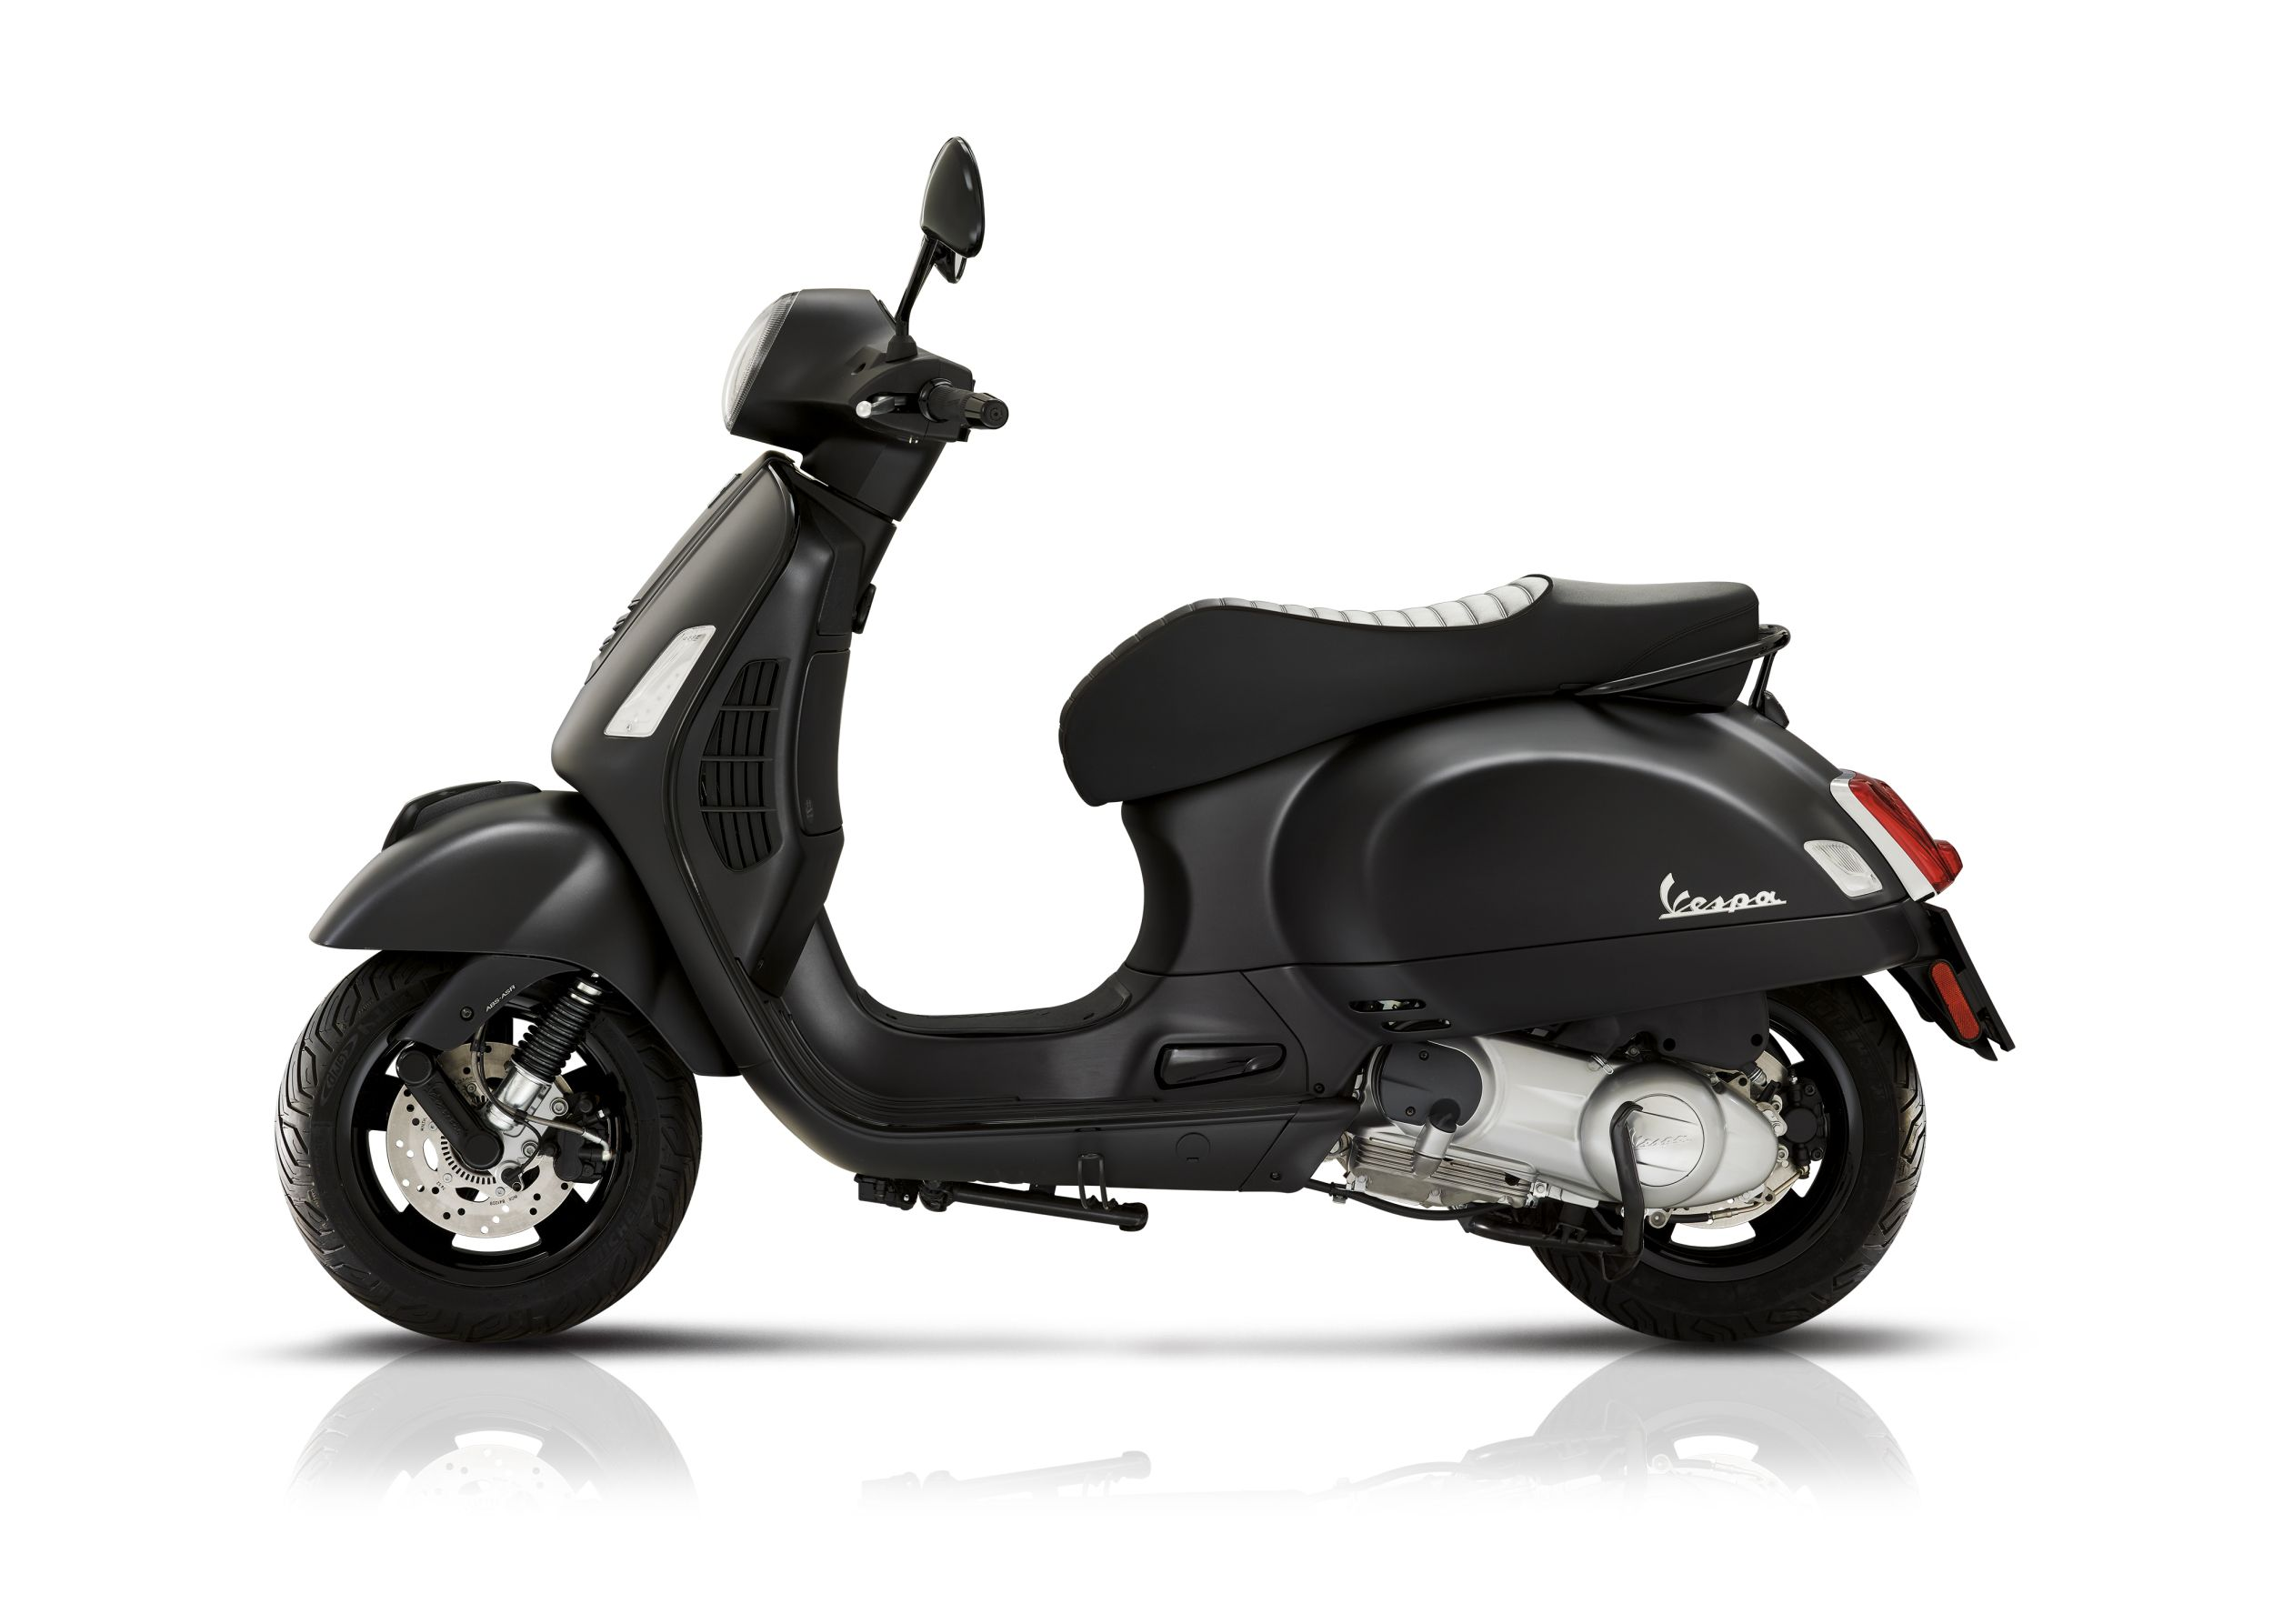 vespa gts 300 super notte all technical data of the. Black Bedroom Furniture Sets. Home Design Ideas